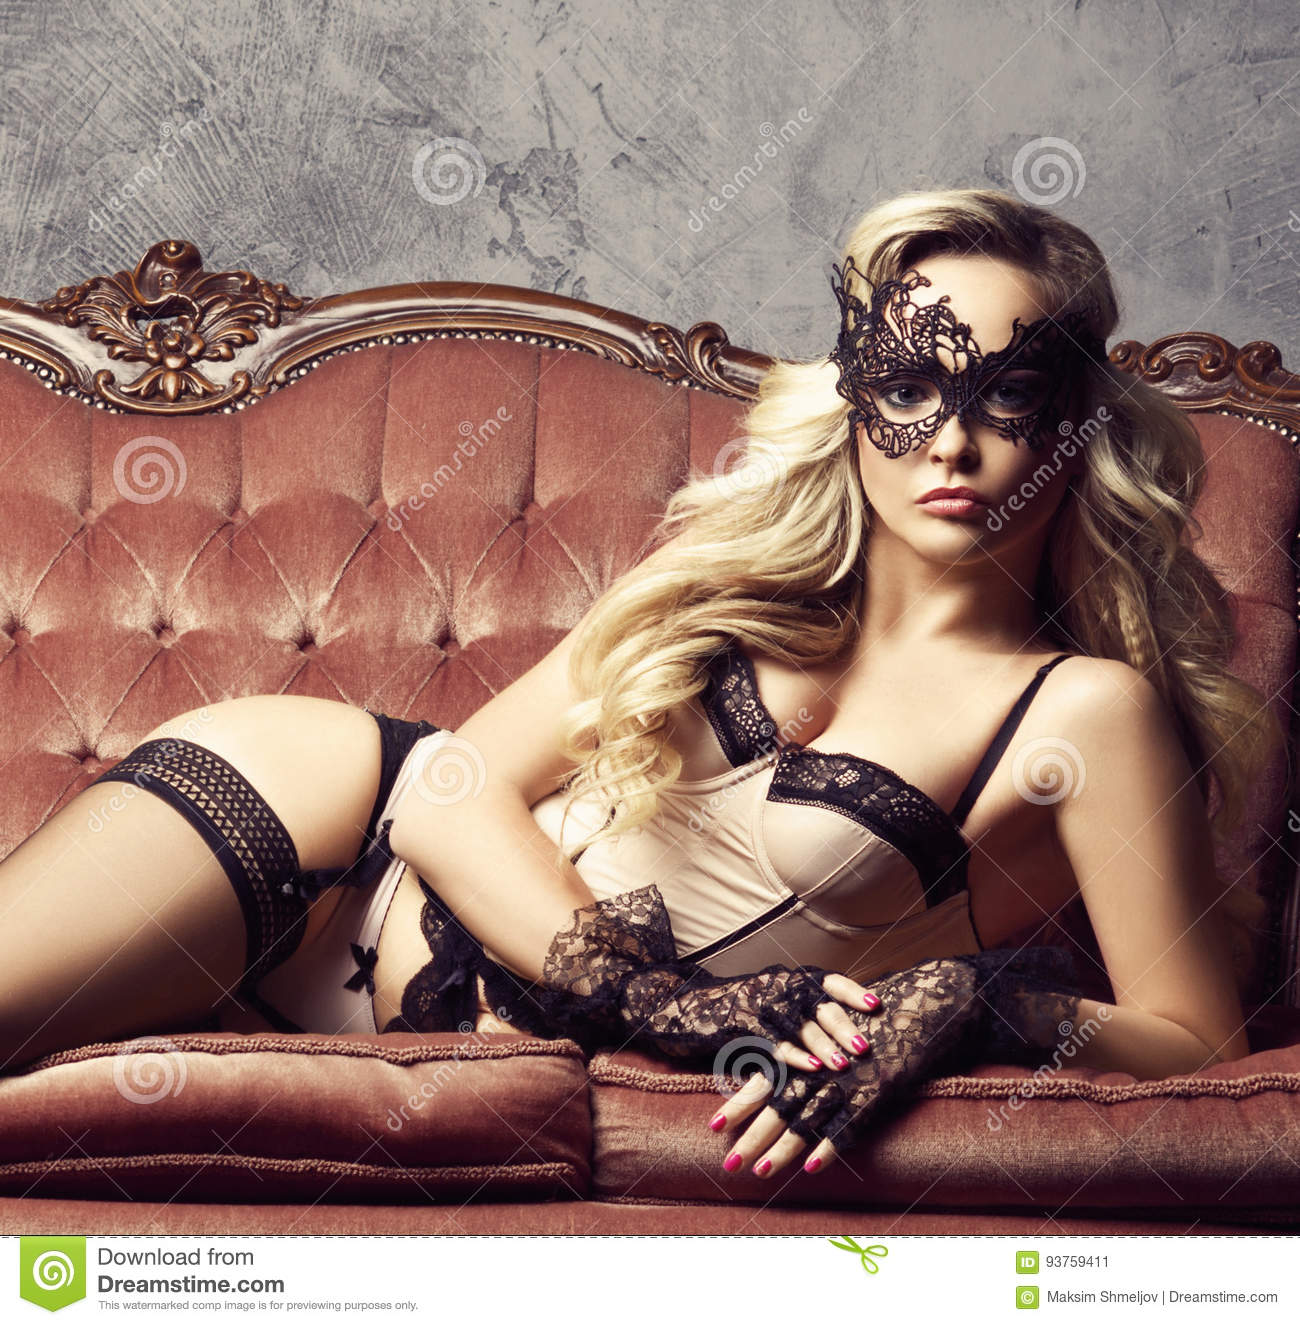 84d3a1f5f81 Beautiful and young woman posing in lingerie and Venetian mask on red sofa.  Vintage interior and retro background.